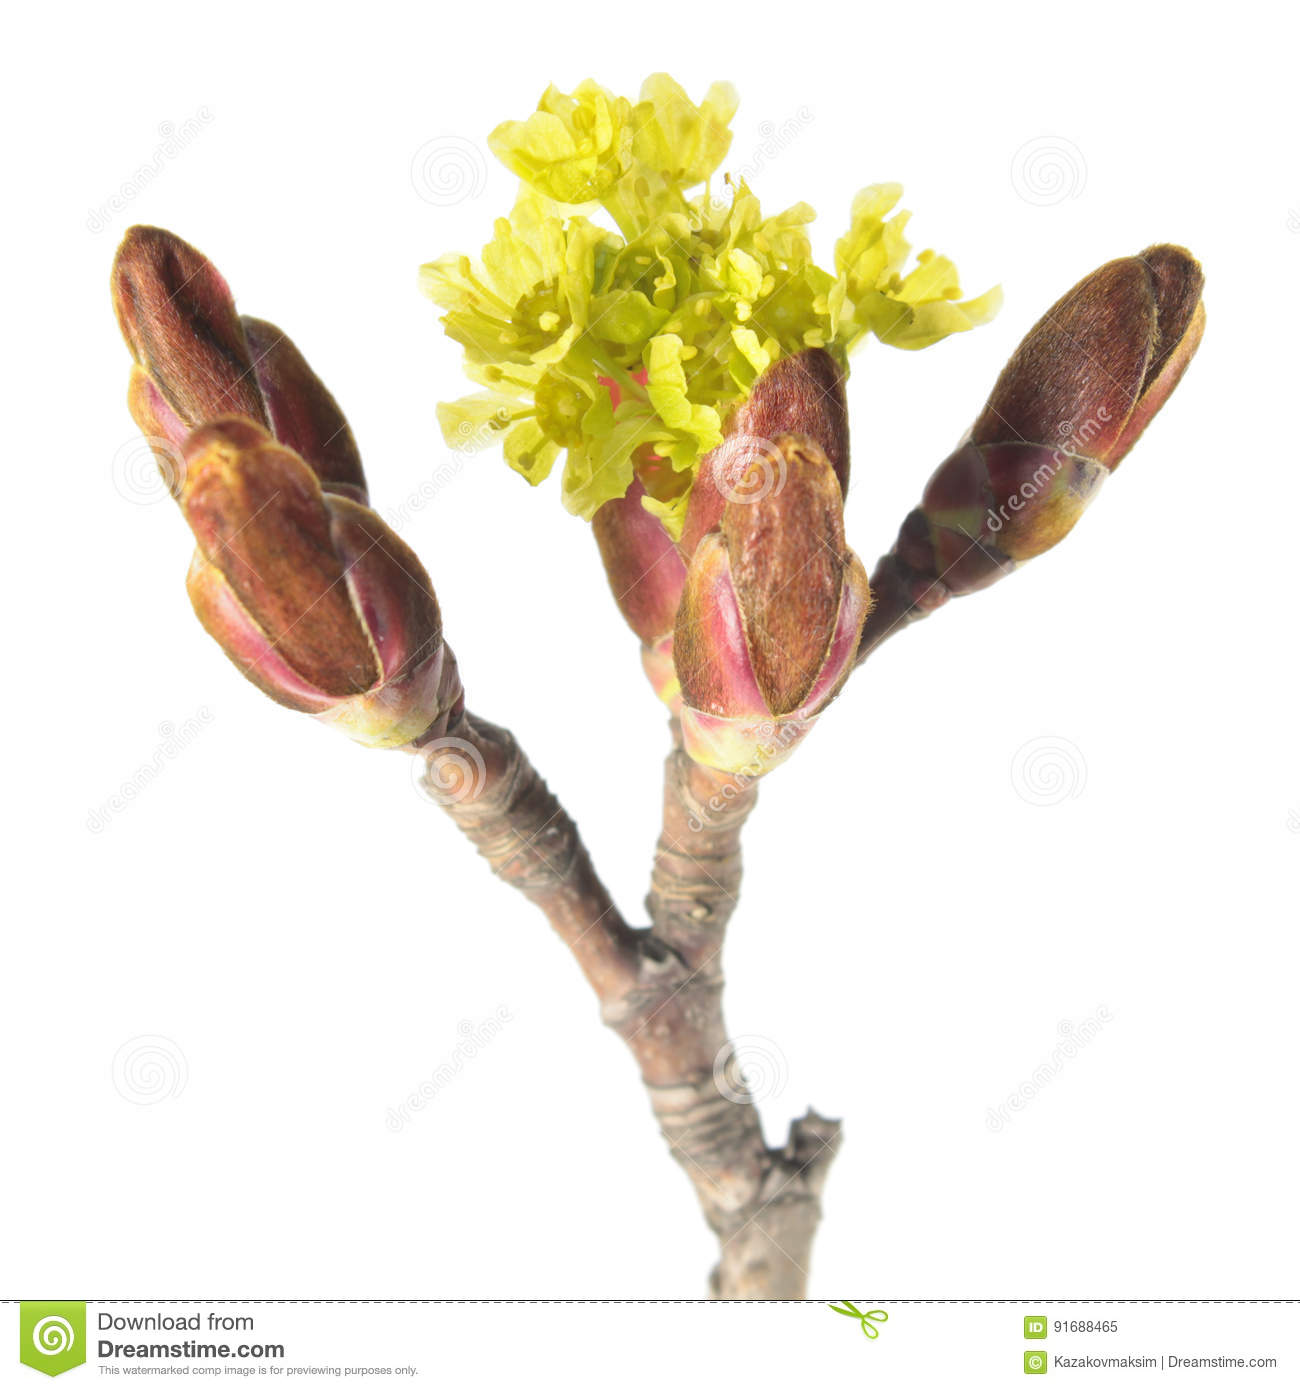 Flowers of Norway maple isolated on white background